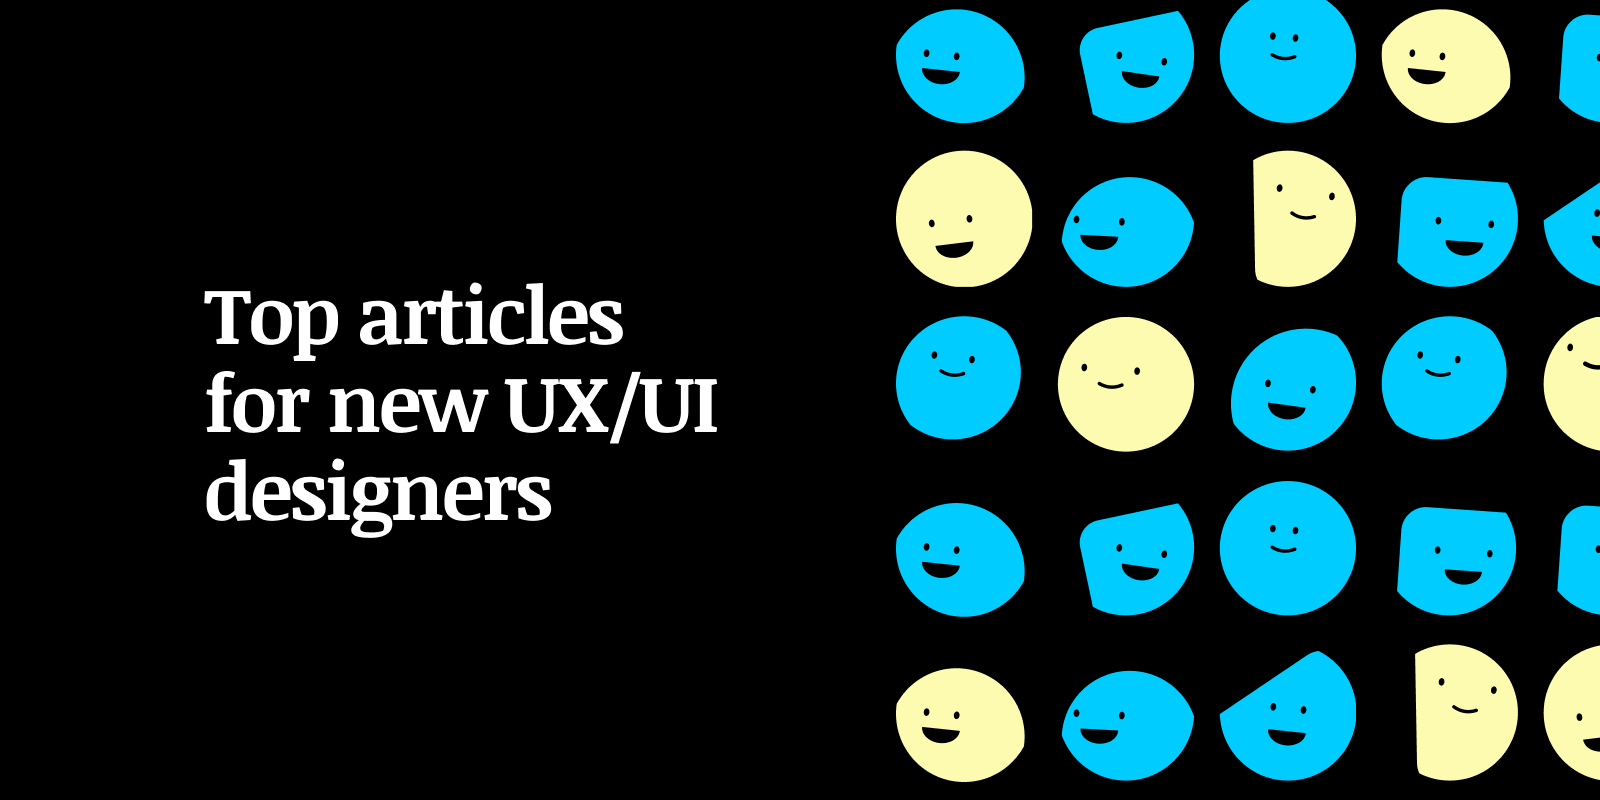 Top articles for new UX and UI designers